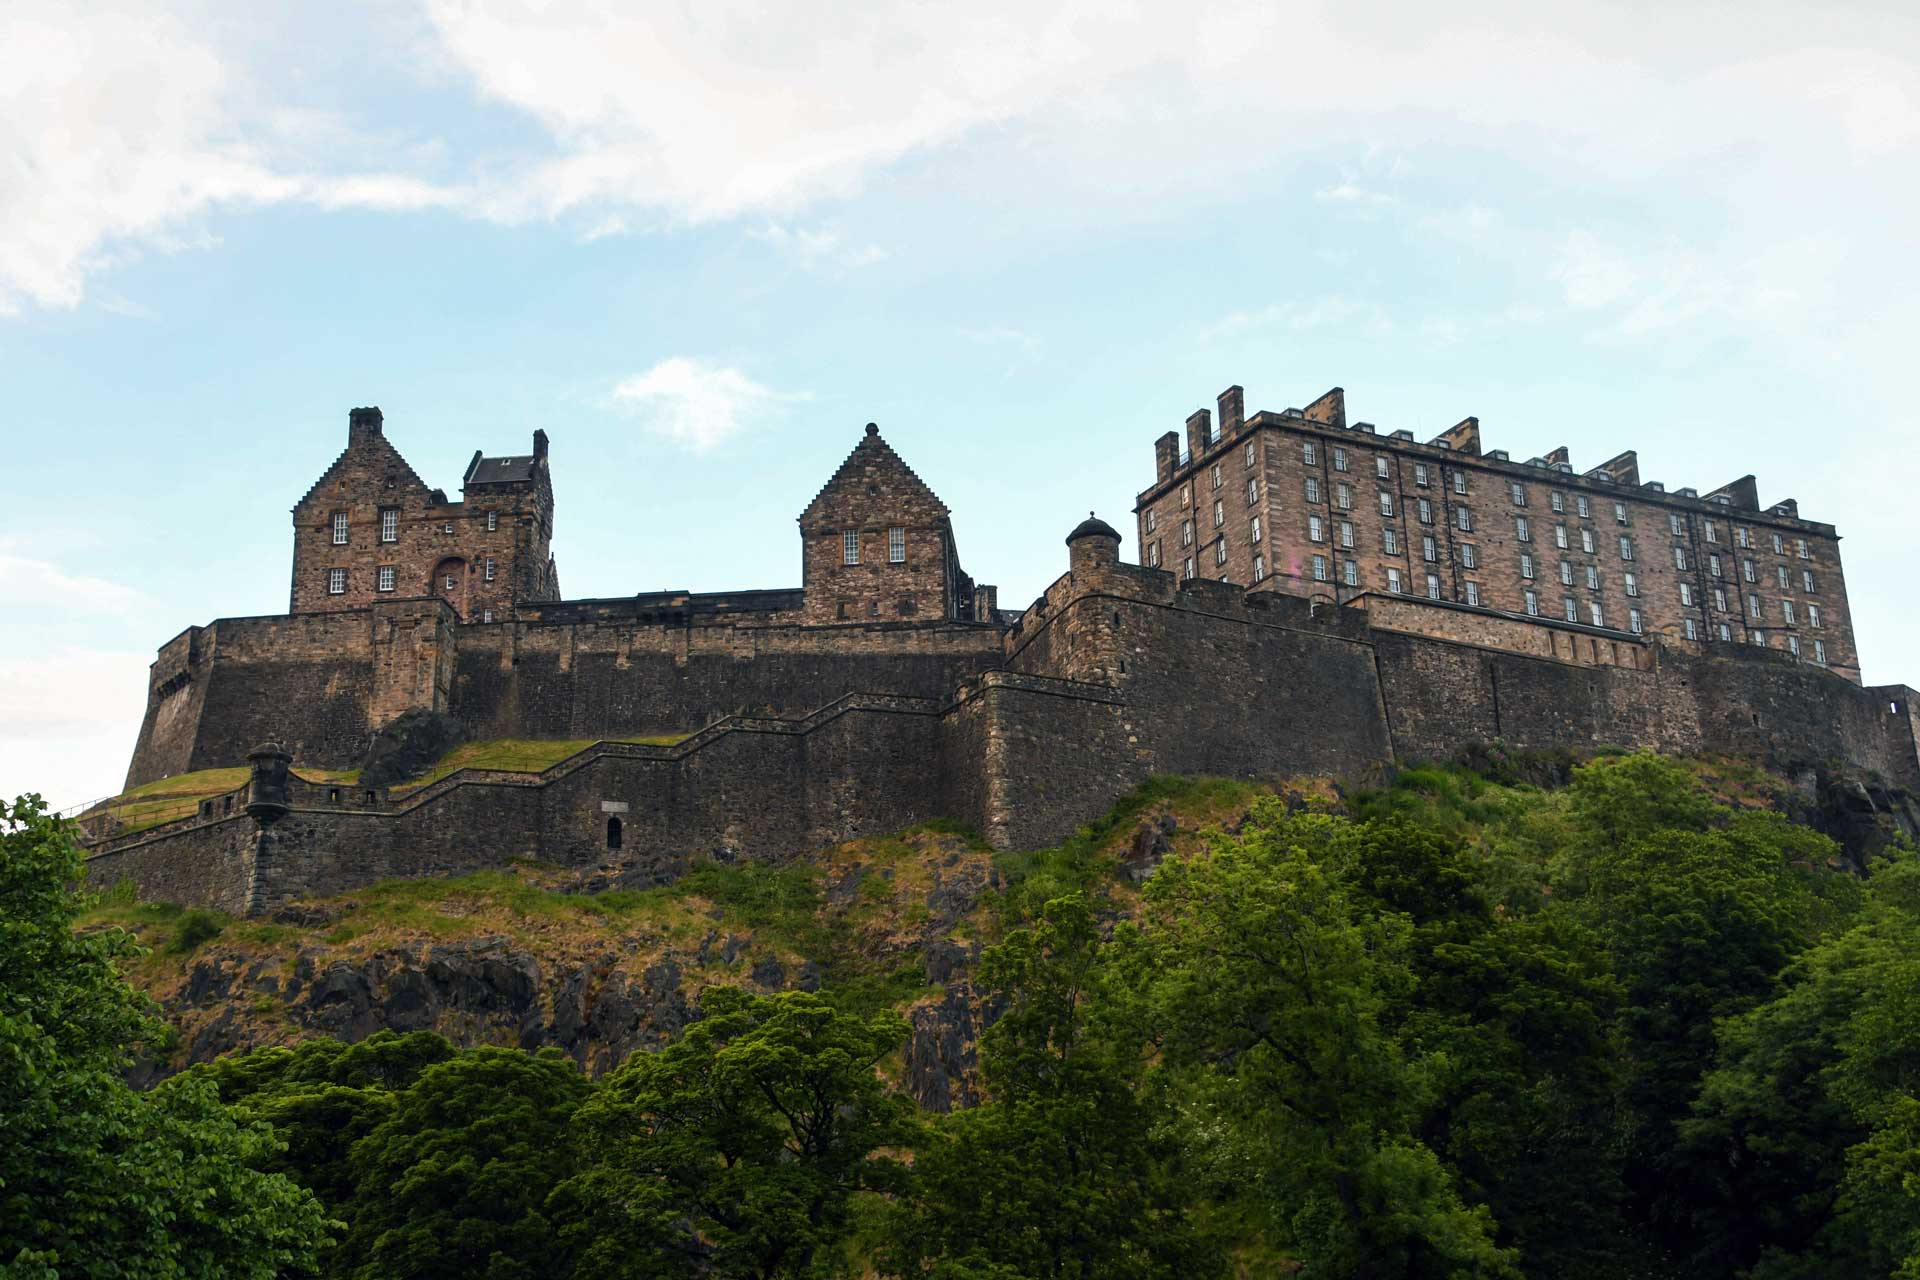 Scotland Motorcycle Tour, Day 1 - Arriving in Edinburgh